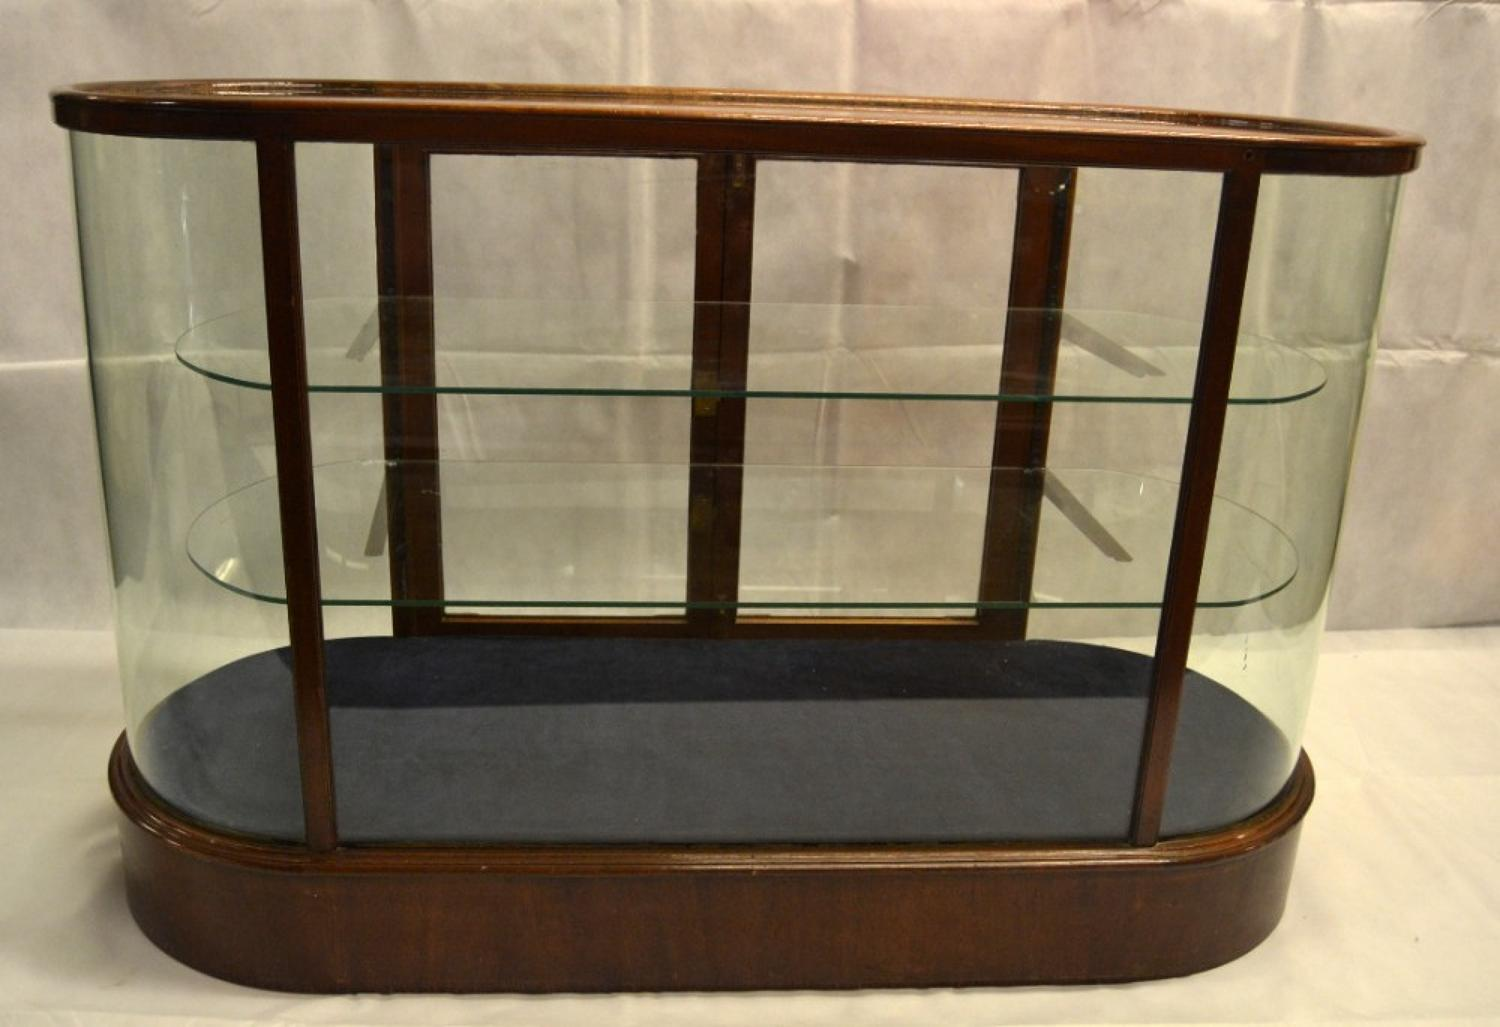 1930s Mahogany Bow Glass Shop Jeweller's Display Counter